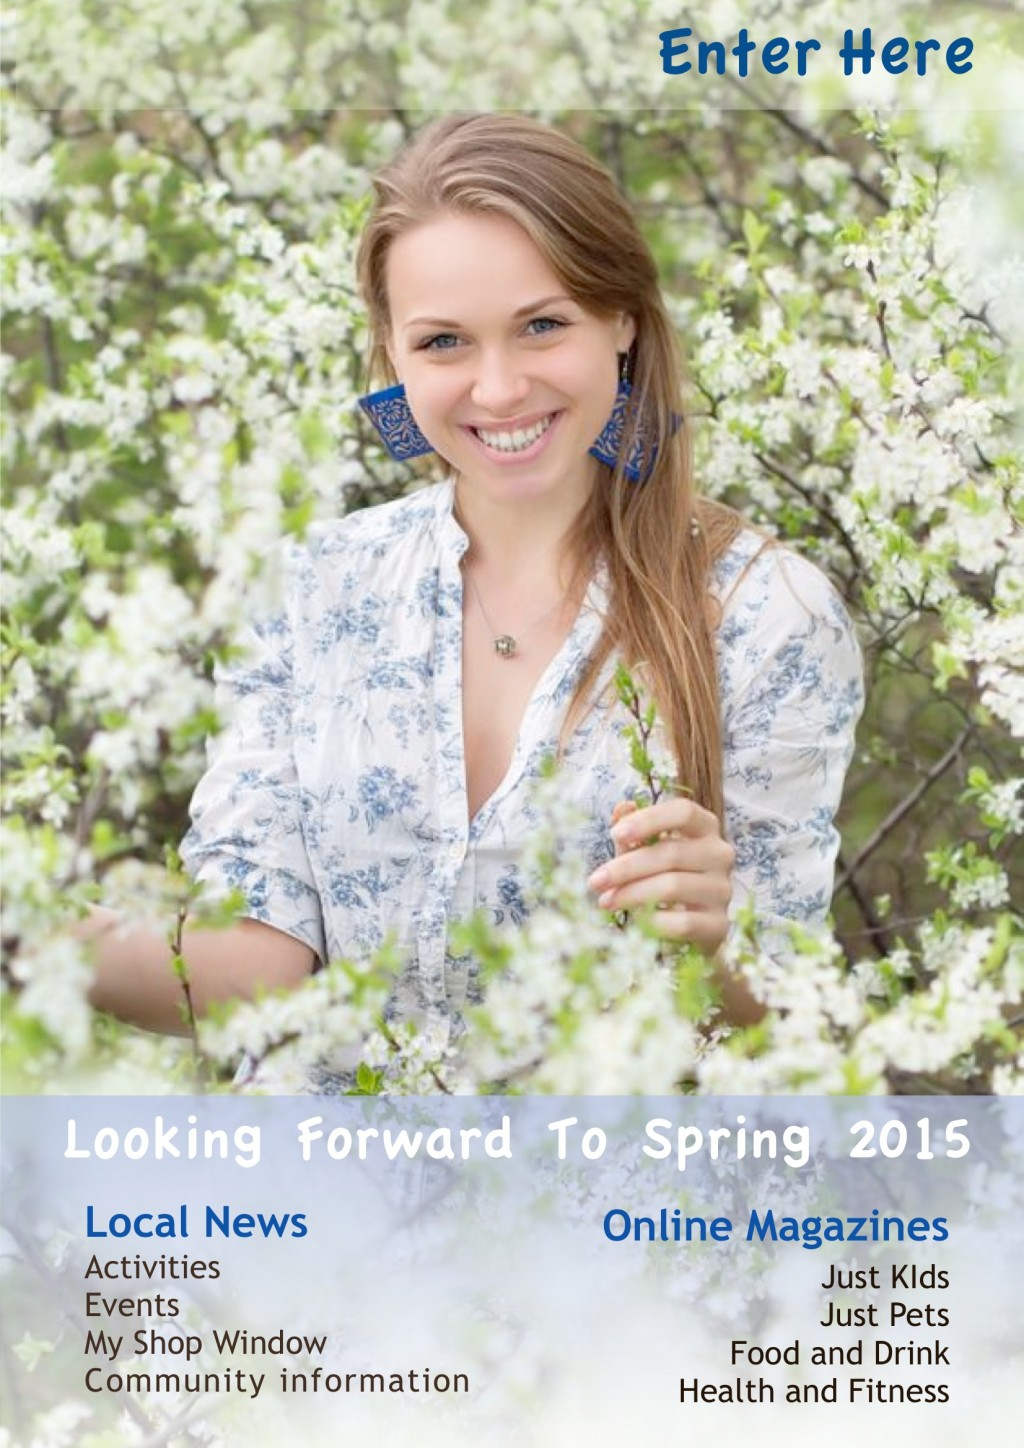 My Sheen Village - Local News, Information, Activities, Events - Welcome - Front Cover Looking forward to Spring 2015